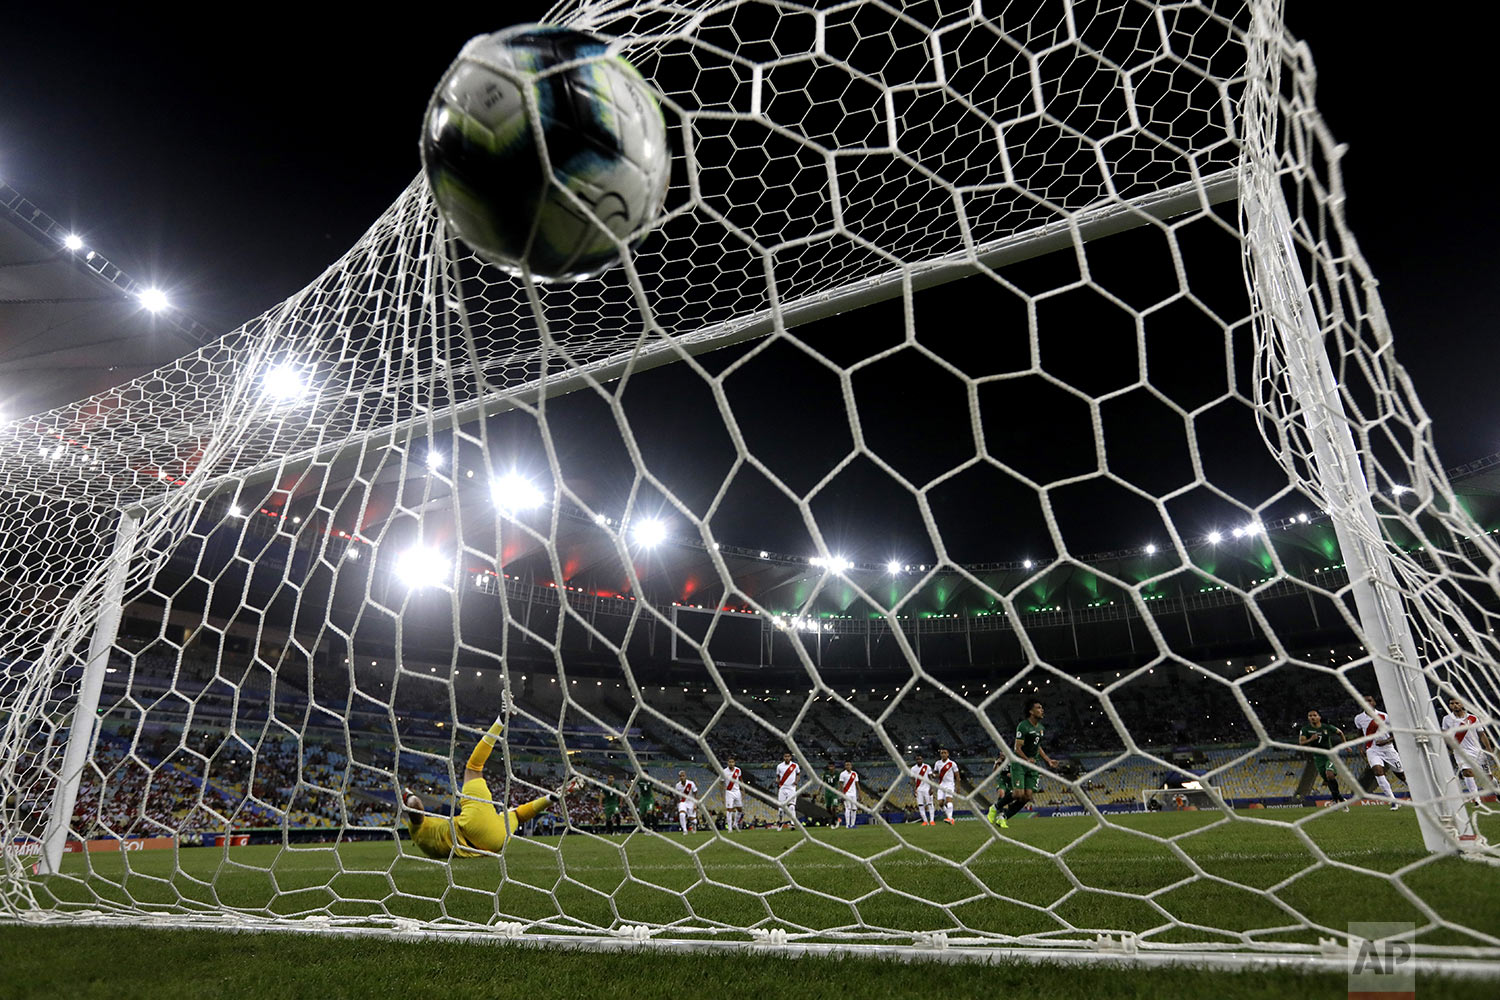 Bolivia's Marcelo Martins Moreno scores the opening goal from the penalty spot against Peru during a Copa America Group A soccer match at Maracana stadium in Rio de Janeiro, Brazil, Tuesday, June 18, 2019. Peru won  3-1. (AP Photo/Leo Correa)